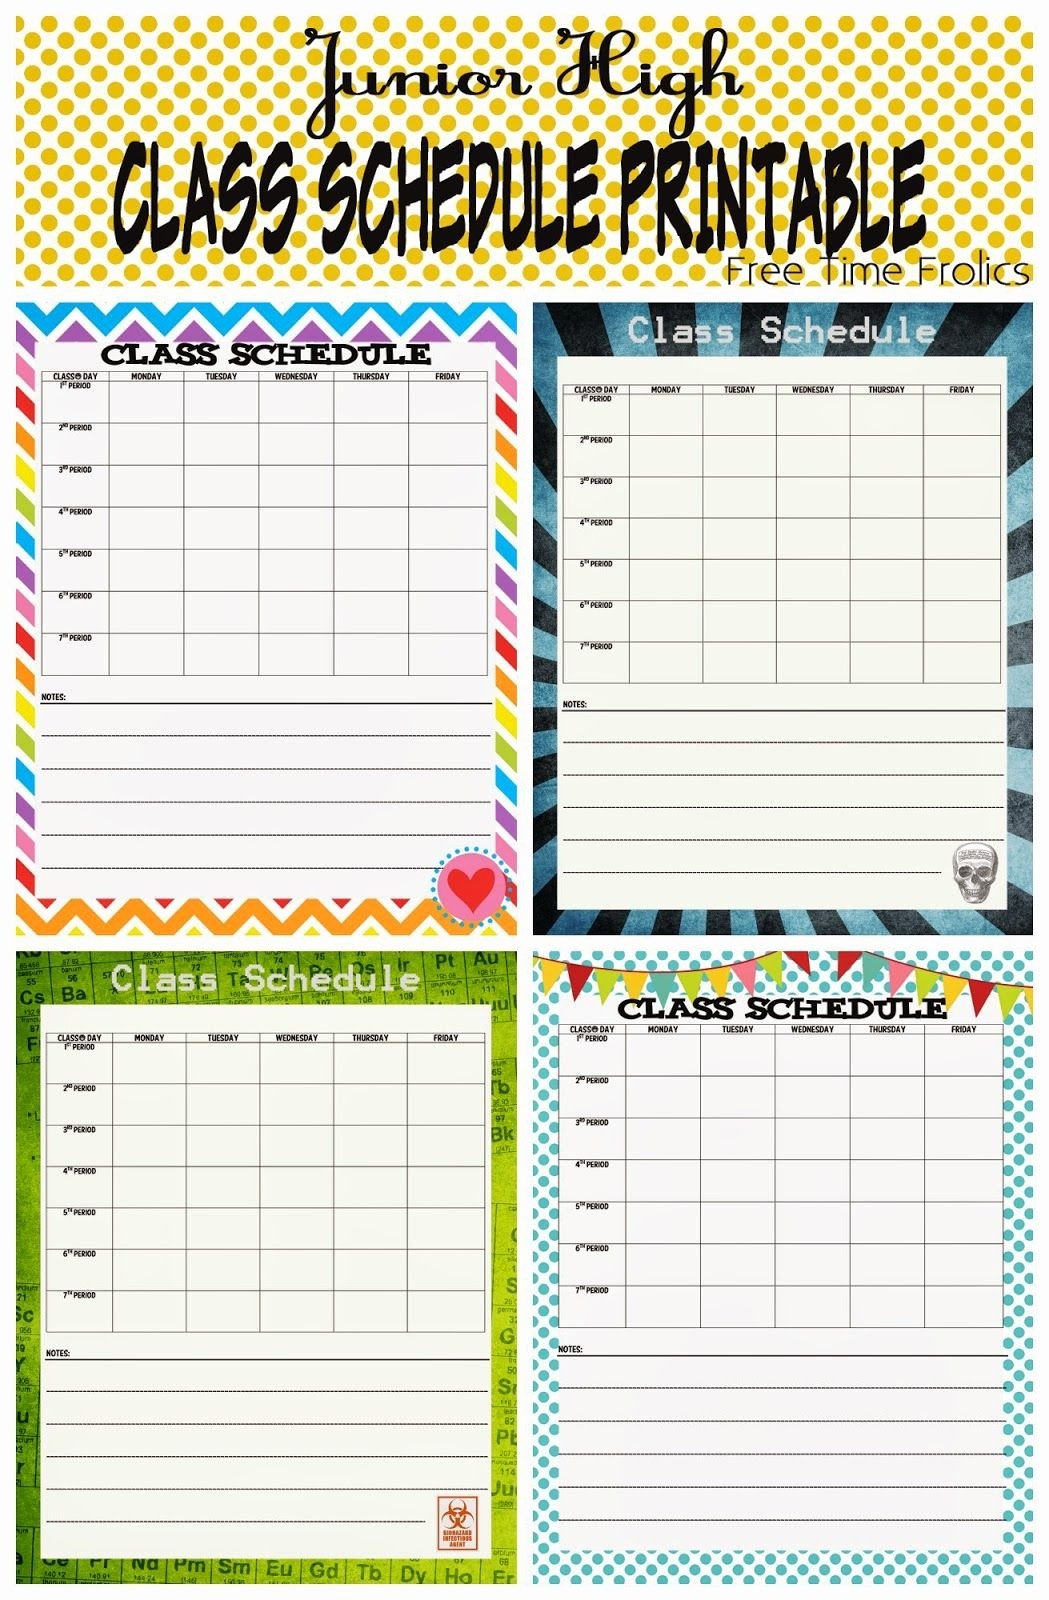 Free Class Schedule Template Beautiful Junior High Class Schedule Printable